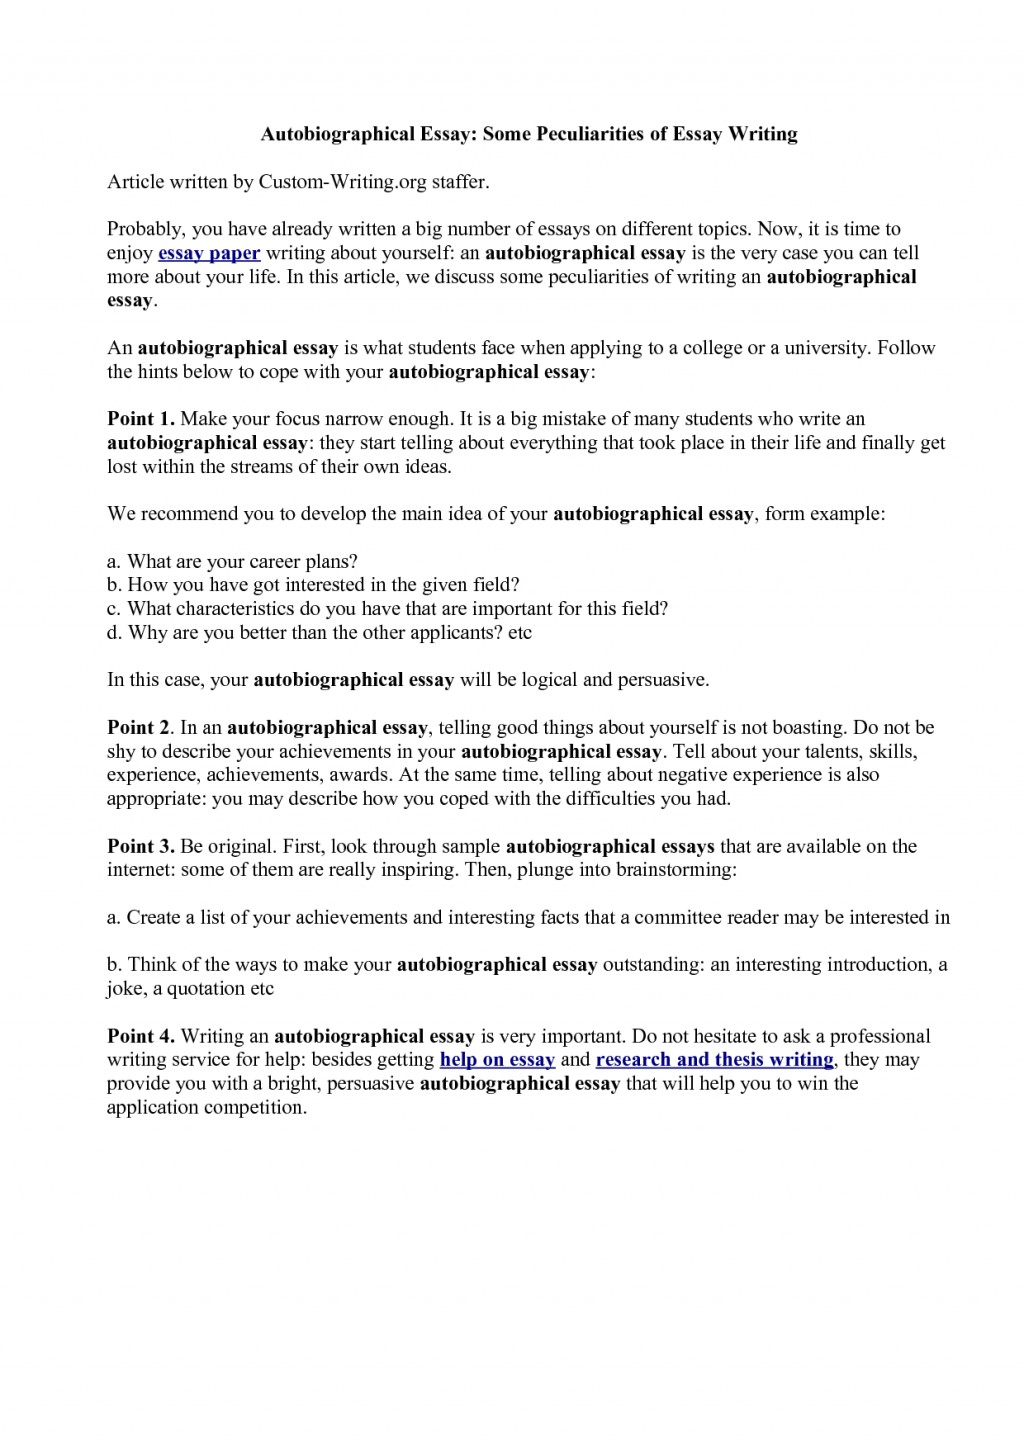 027 Essay Example Autobiography Of Telling About Yourself Luxury Unique Pdf Examples For College Large